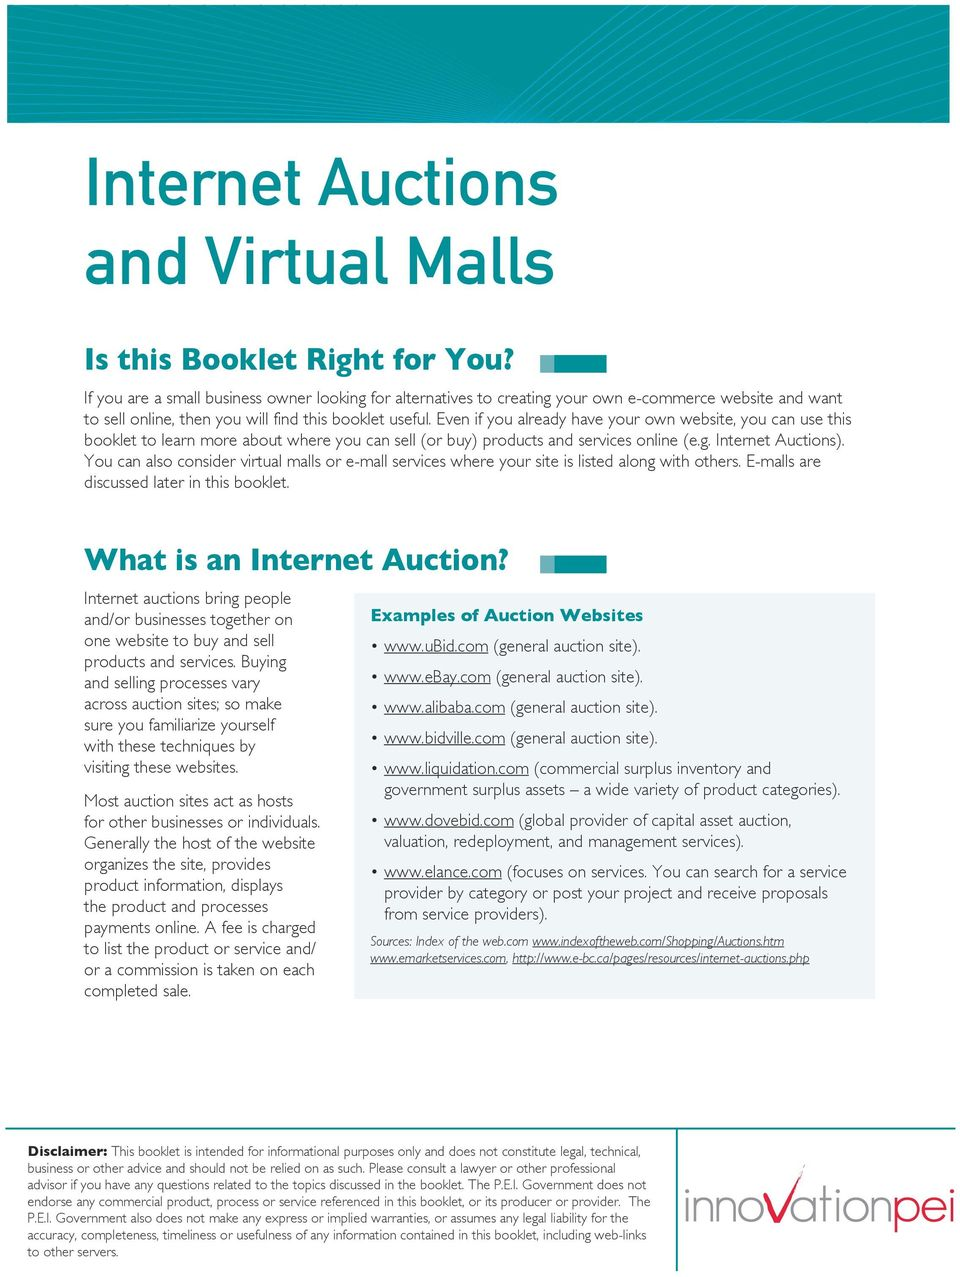 Internet Auctions and Virtual Malls - PDF